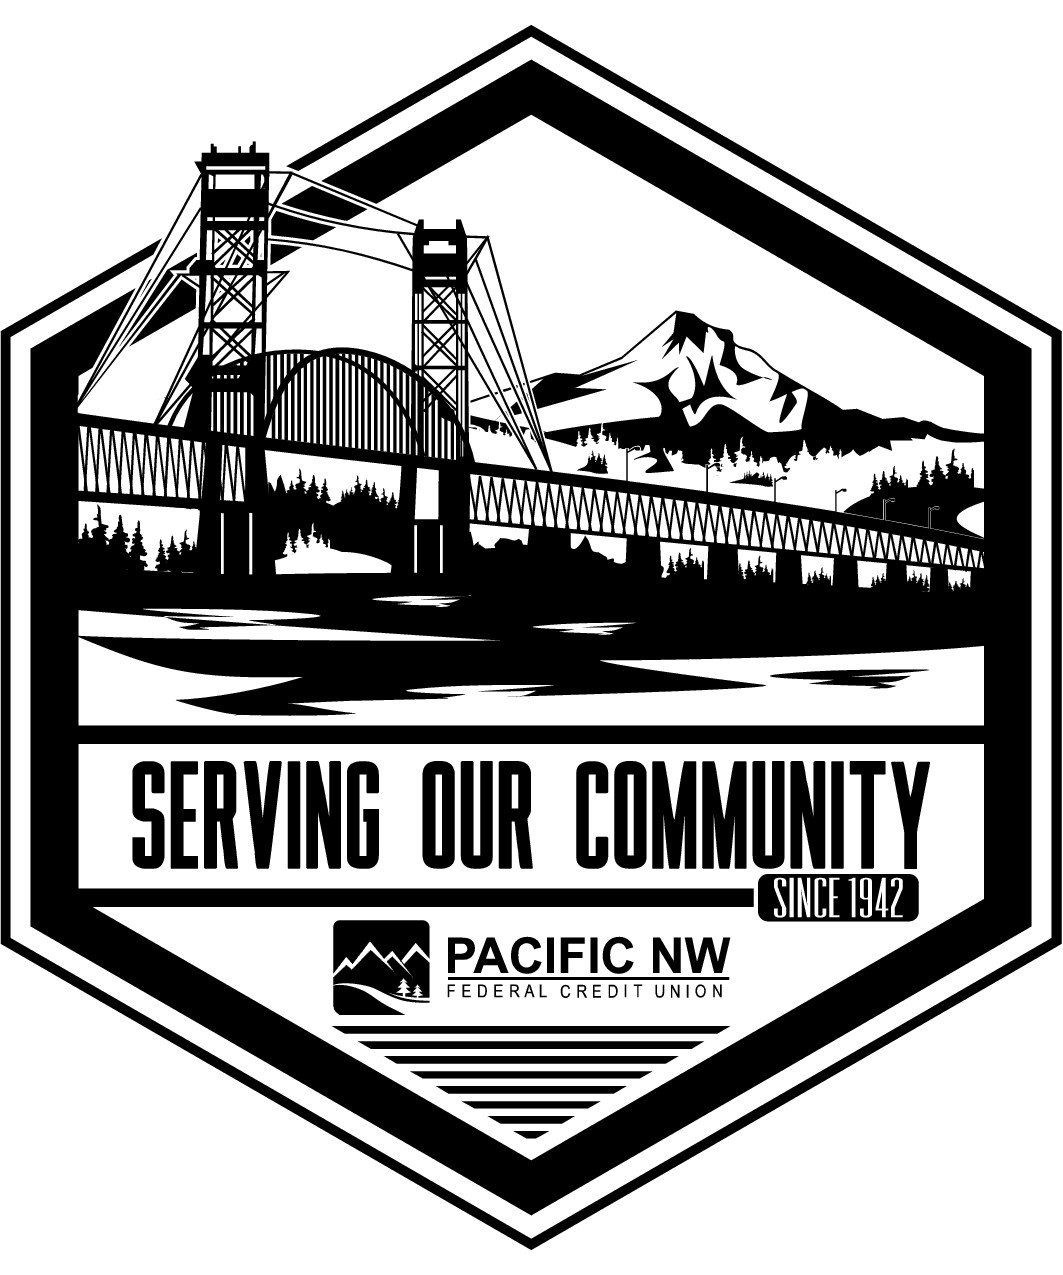 t-shirt for community-based financial institution in the great Pacific NW